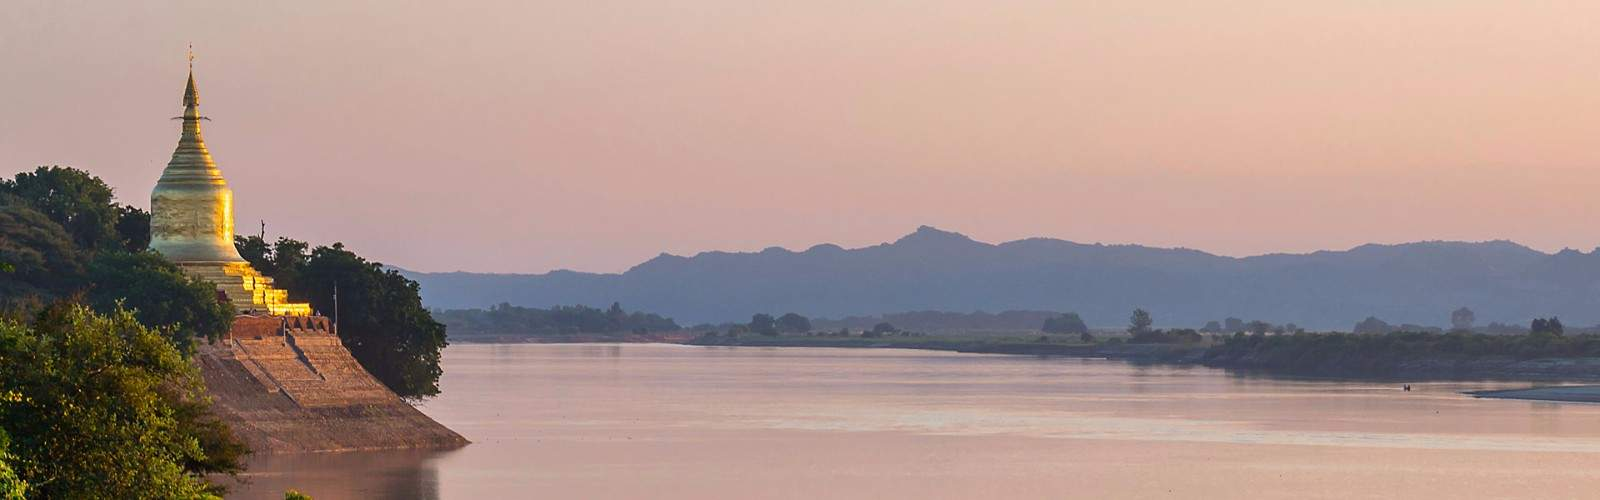 Irrawaddy River Holidays